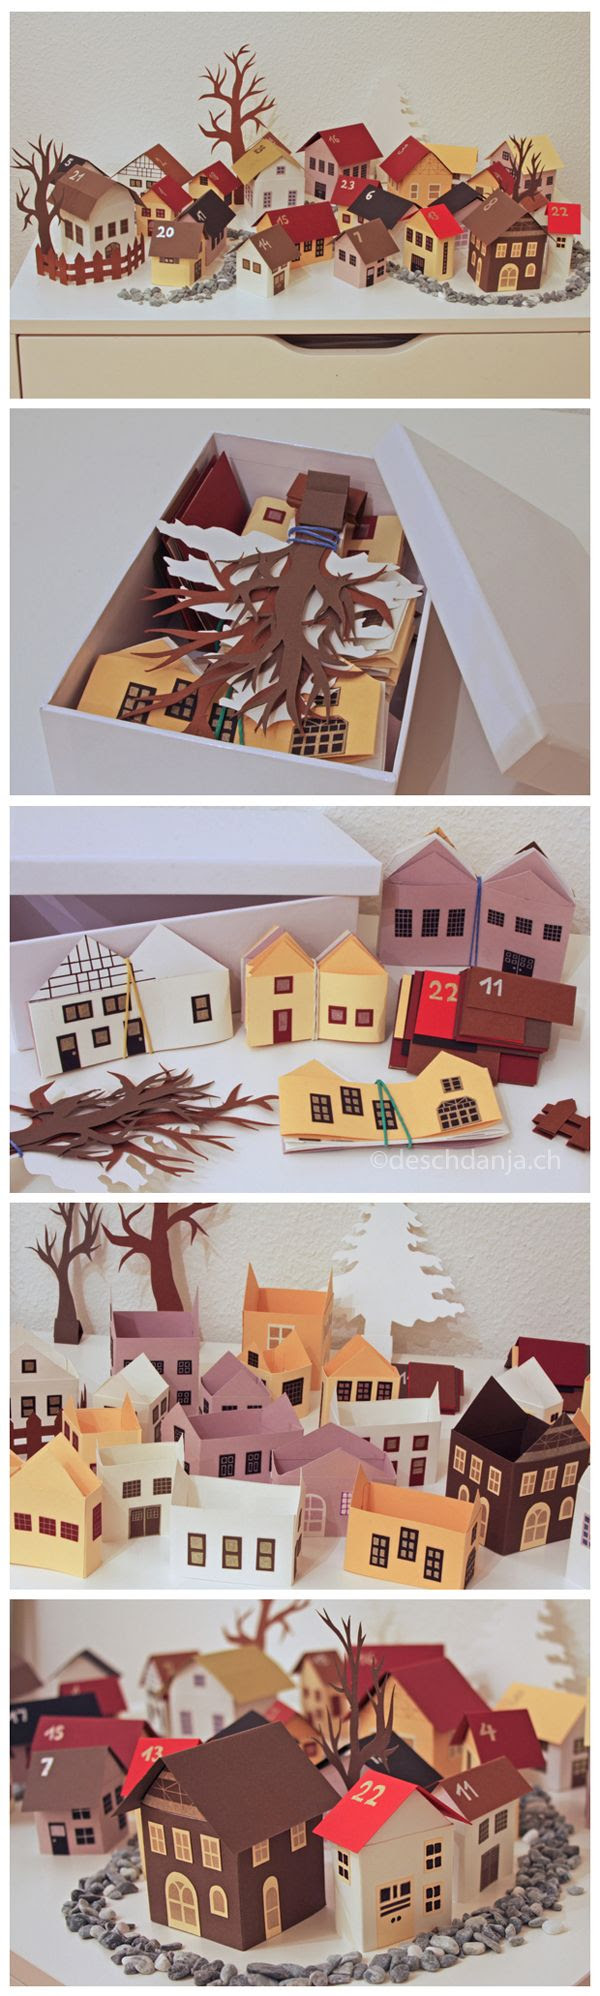 My advent calendar consists of 24 little houses made out of paper. They can be easily folded flat for storage.